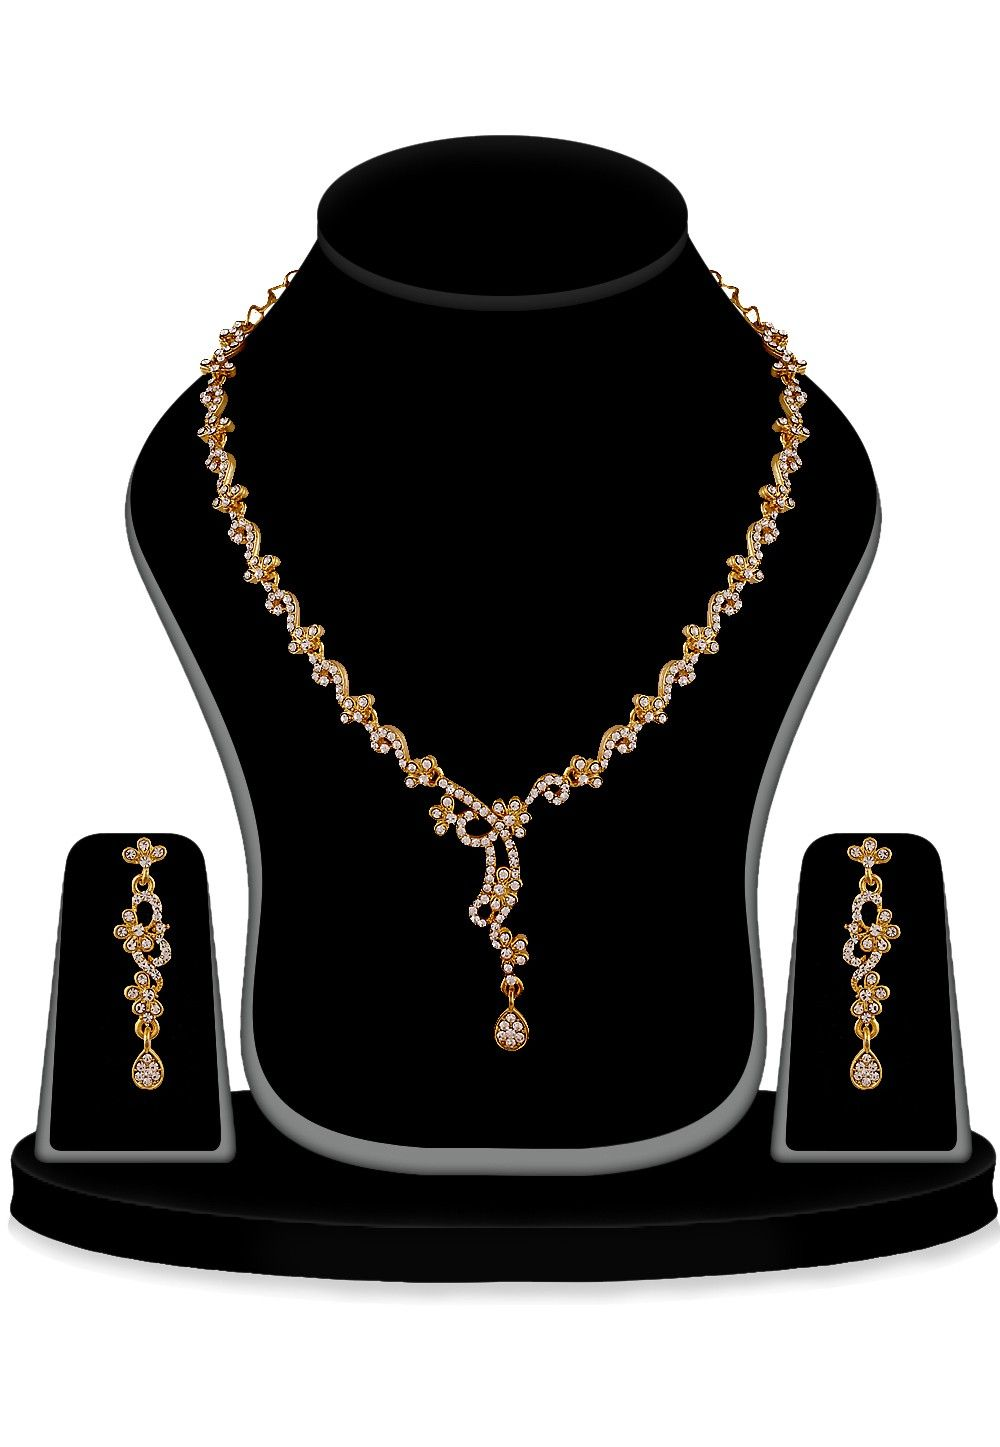 Stone Studded Necklace Set in Golden and White